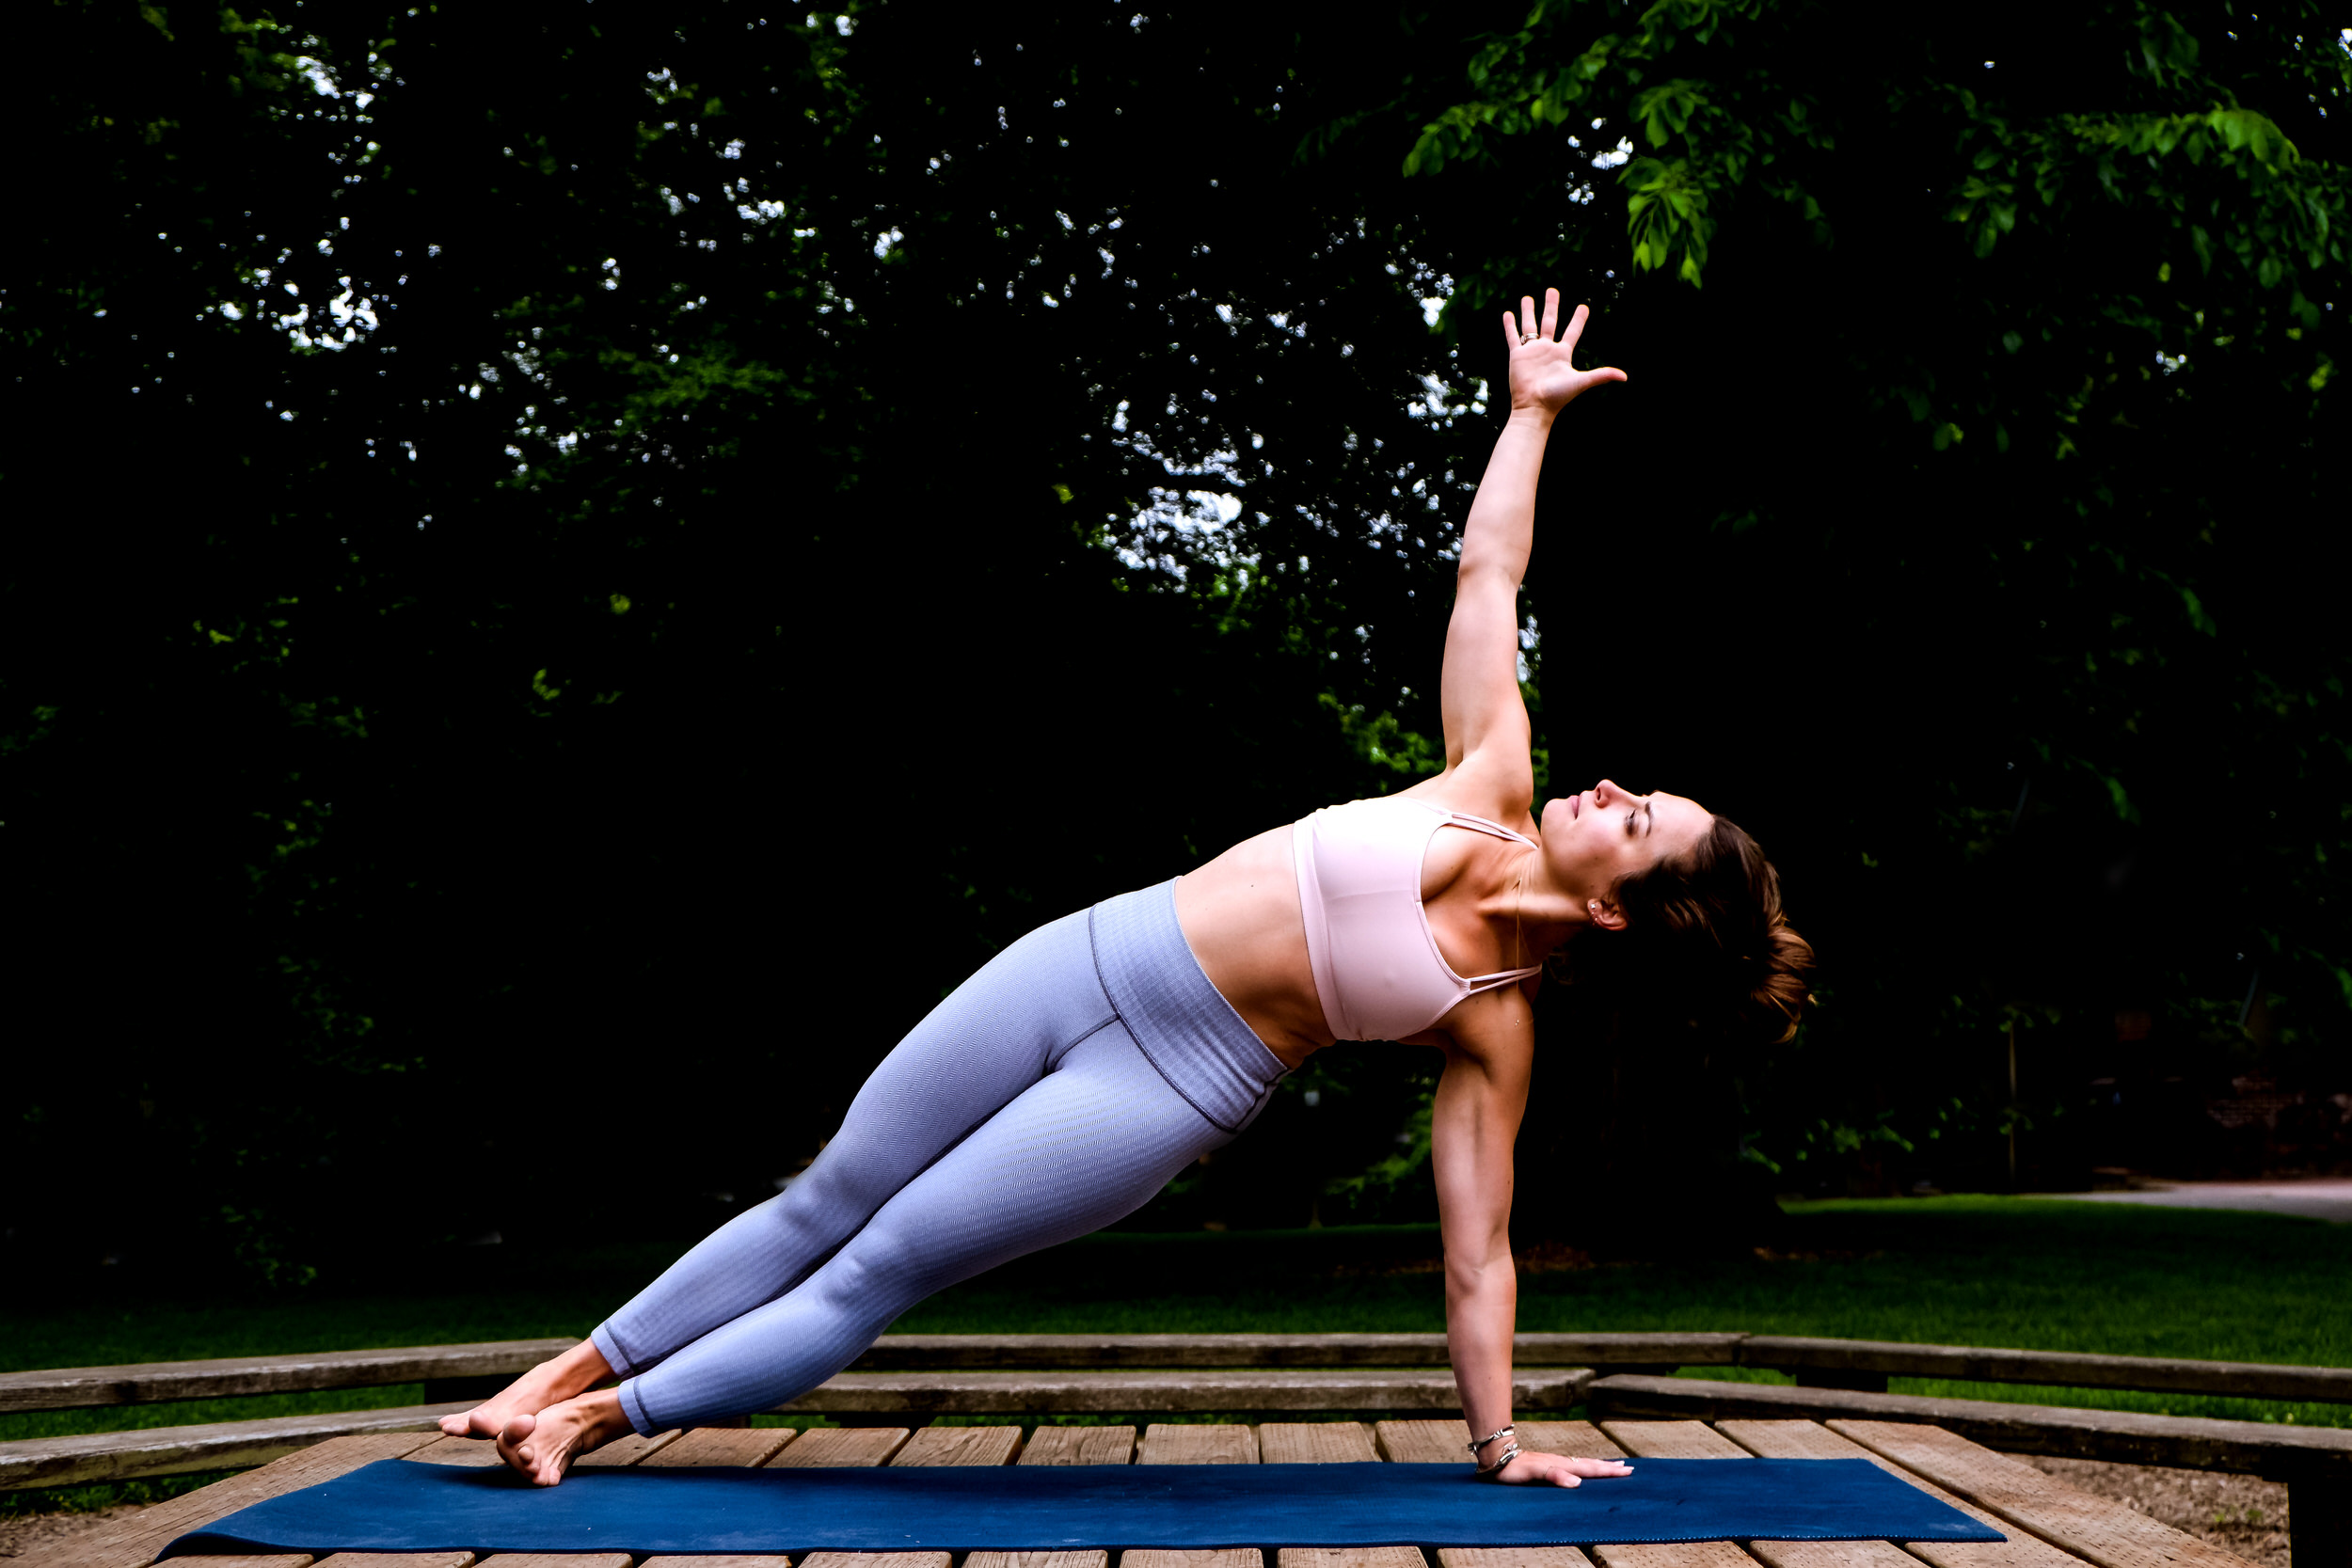 Wedding Day Yoga Poses: How to do yoga poses